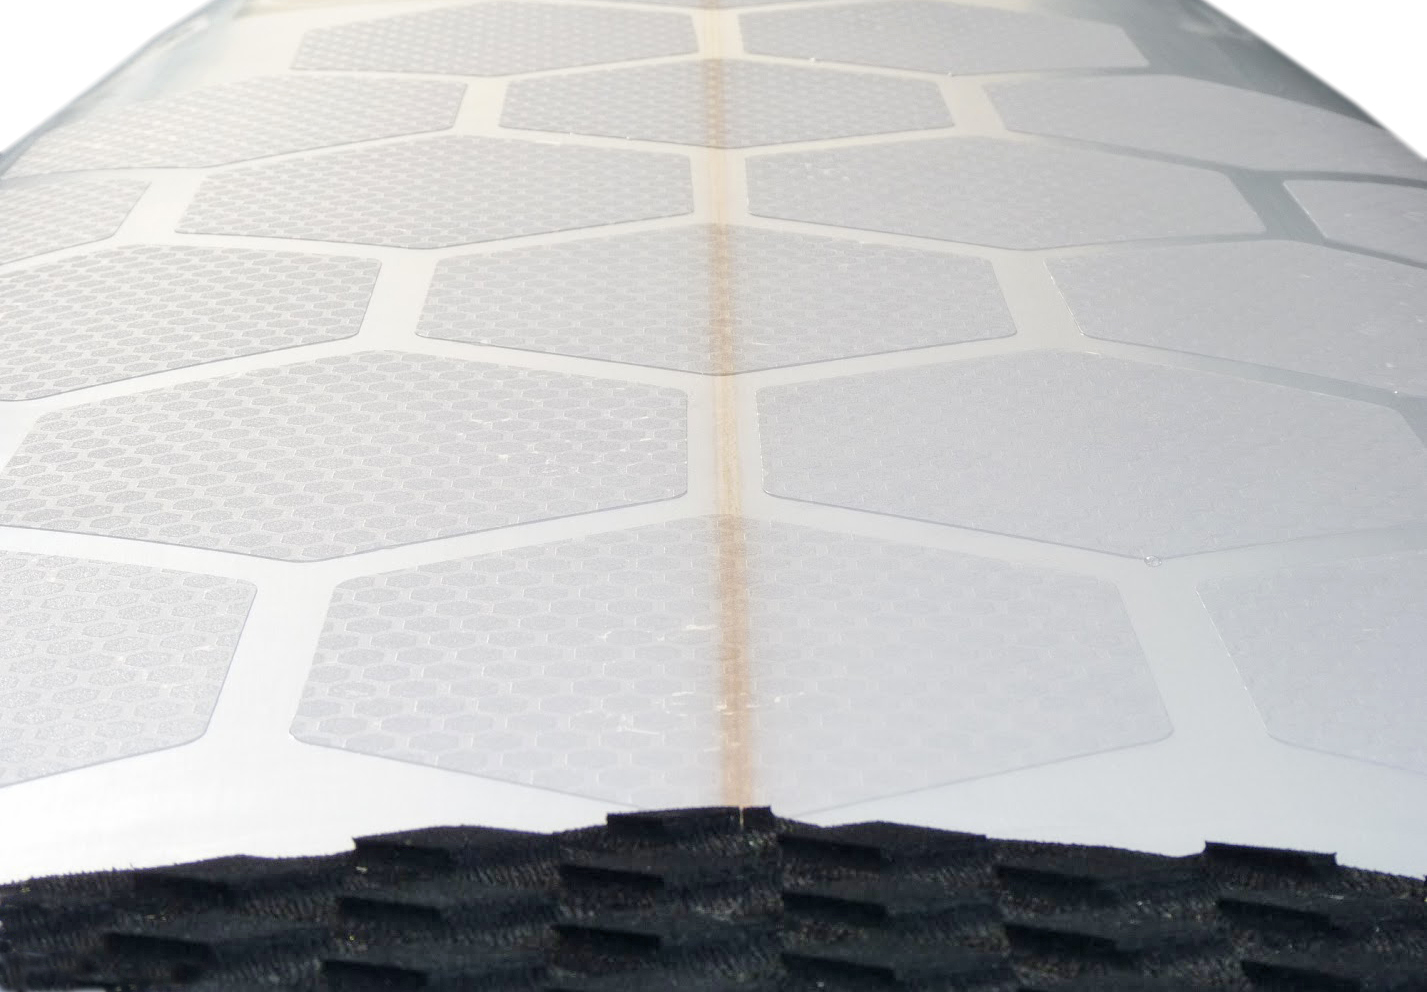 4a9041b857 20 PIECES Hexa Traction Pad 2019 clear